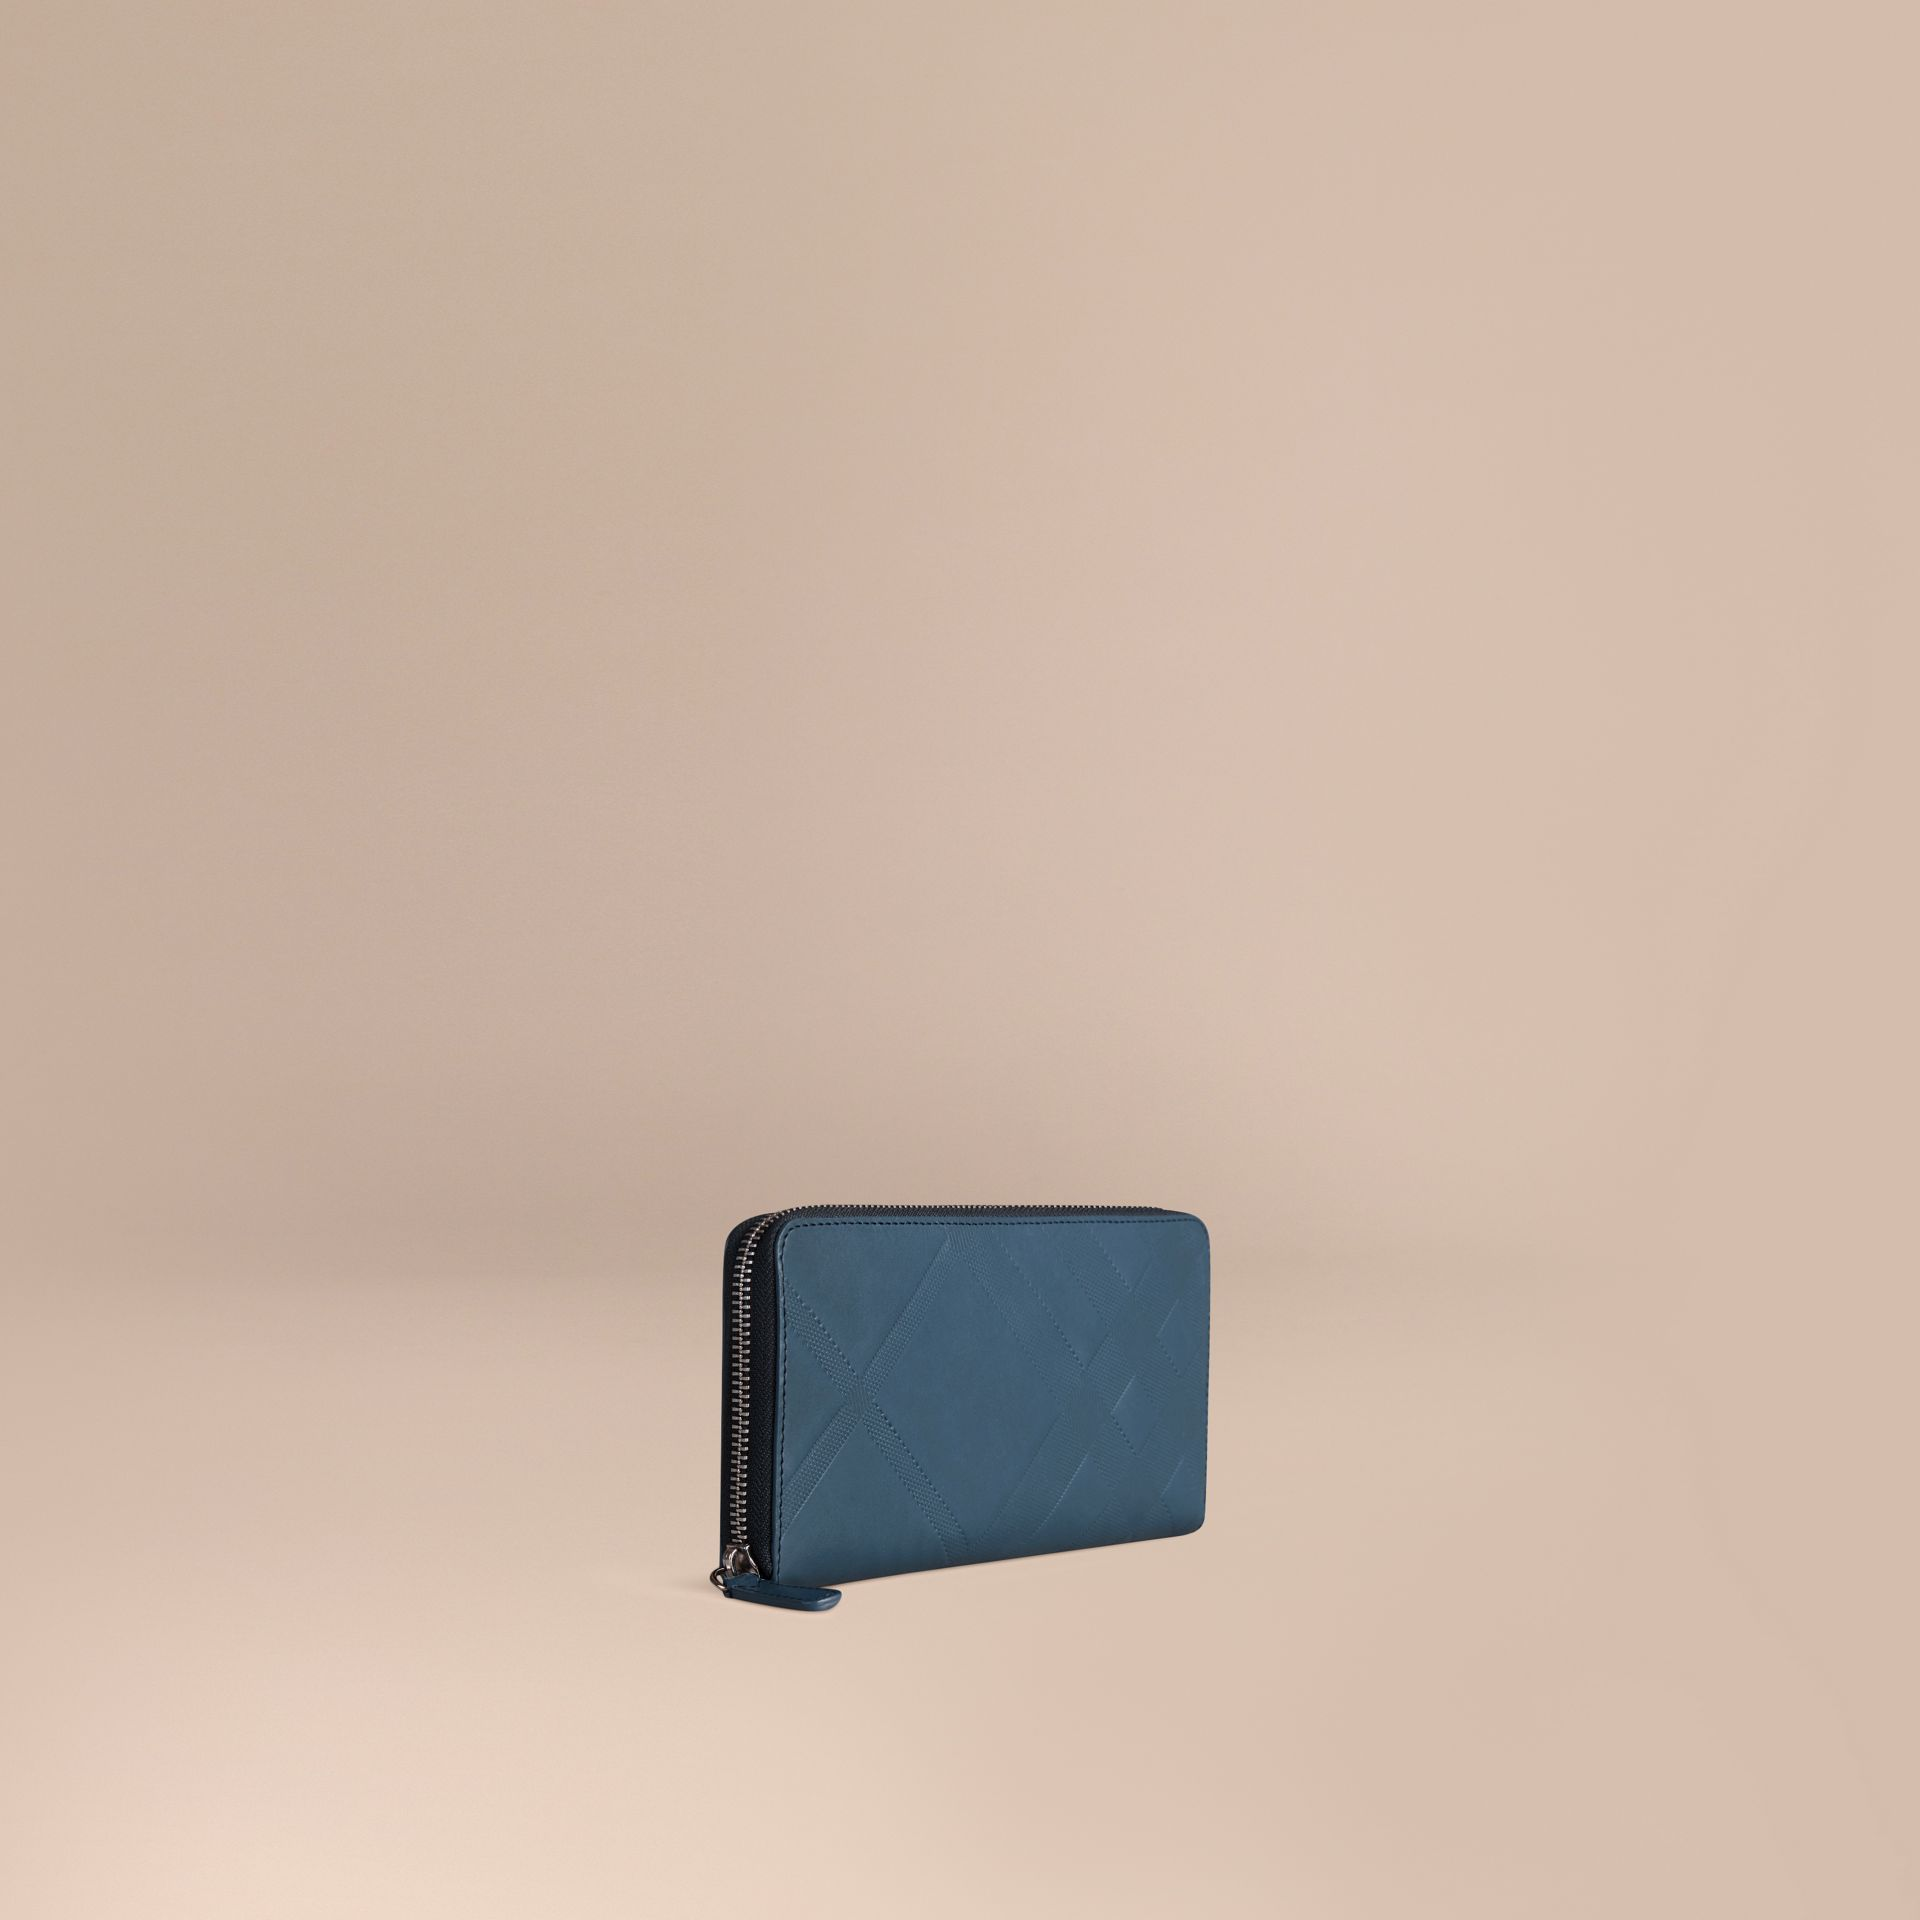 Steel blue Check-embossed Leather Ziparound Wallet Steel Blue - gallery image 1